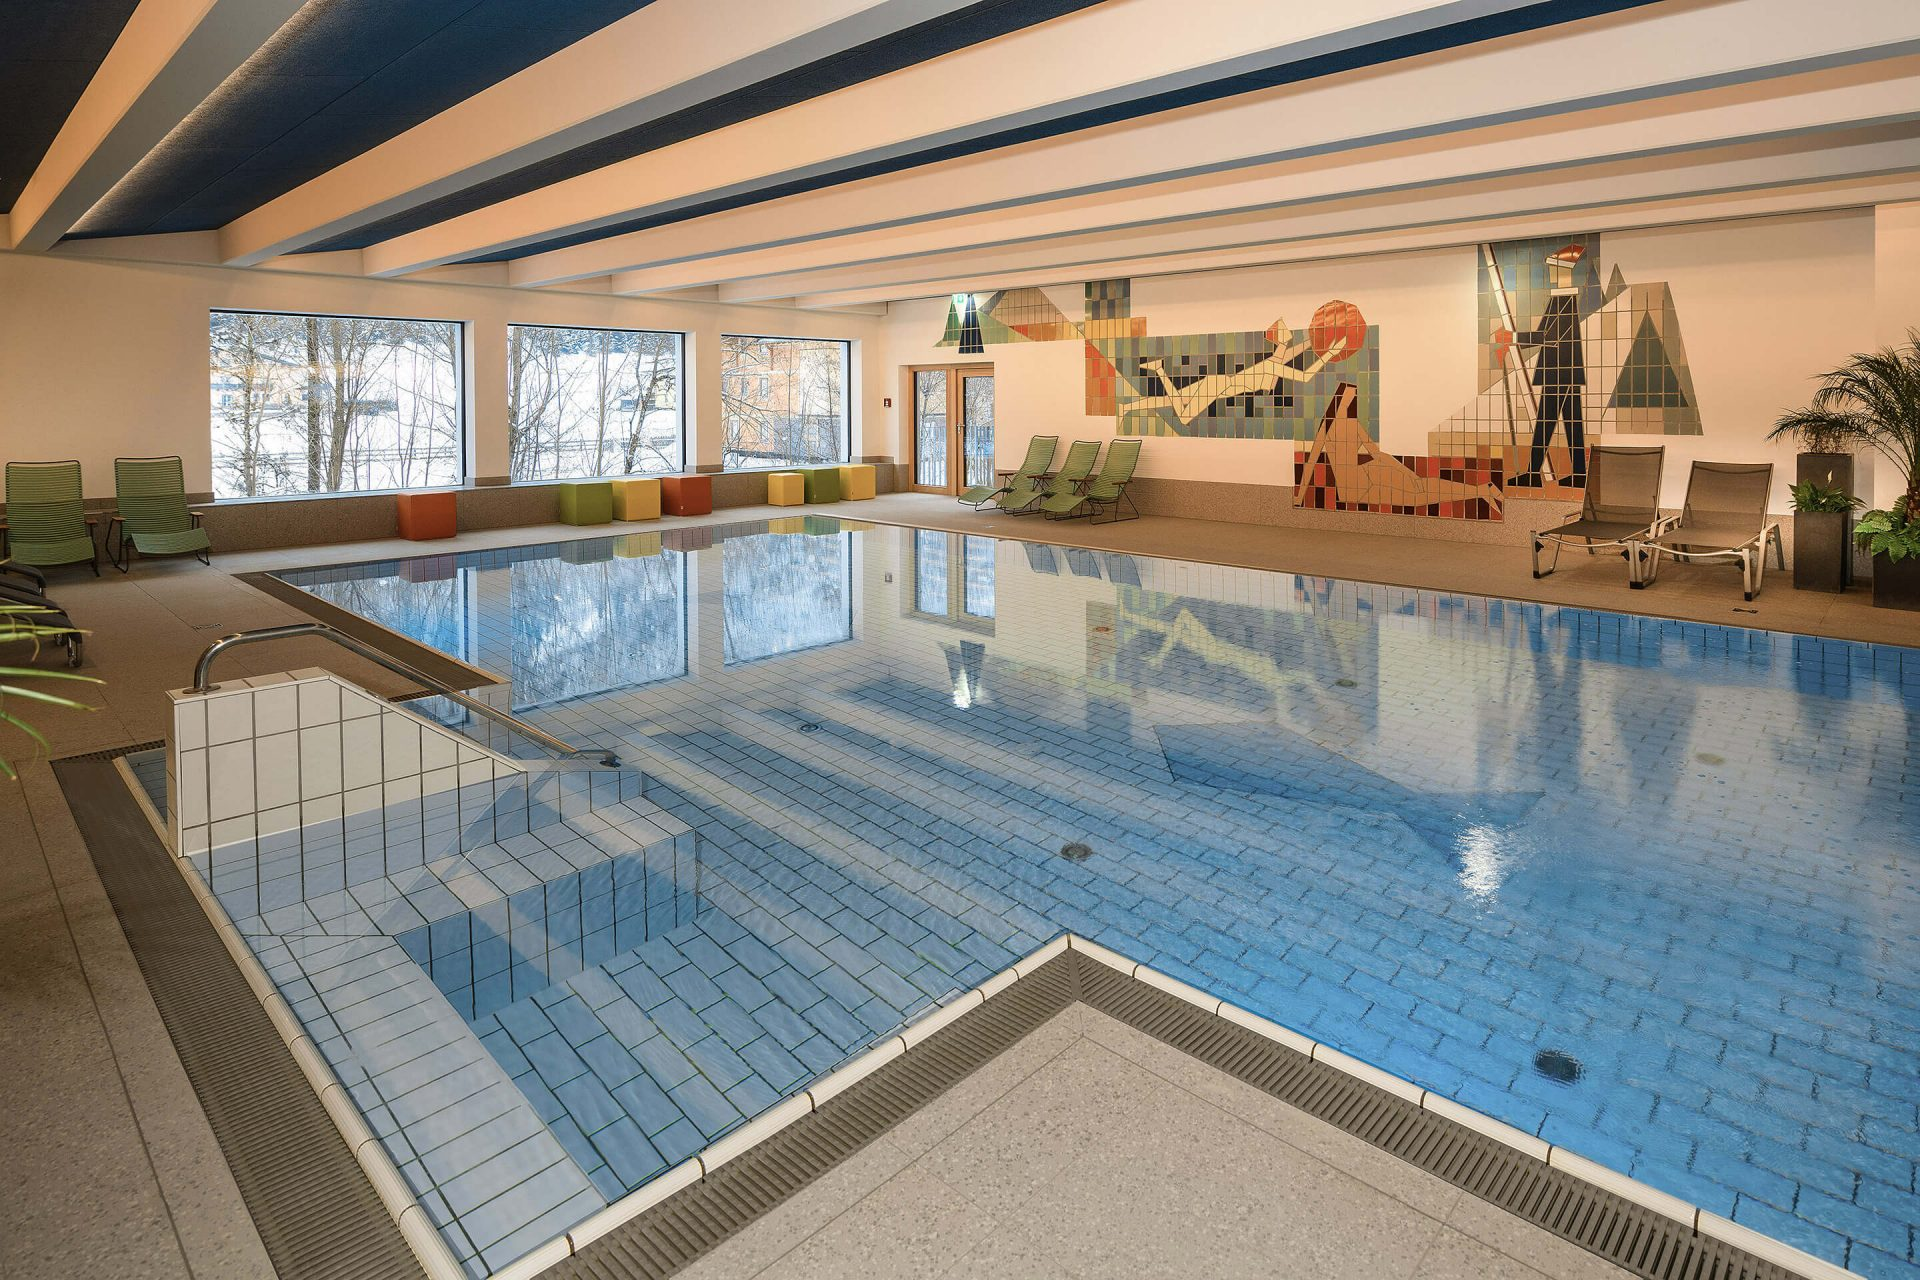 Tauernhof_indoorpool_7650